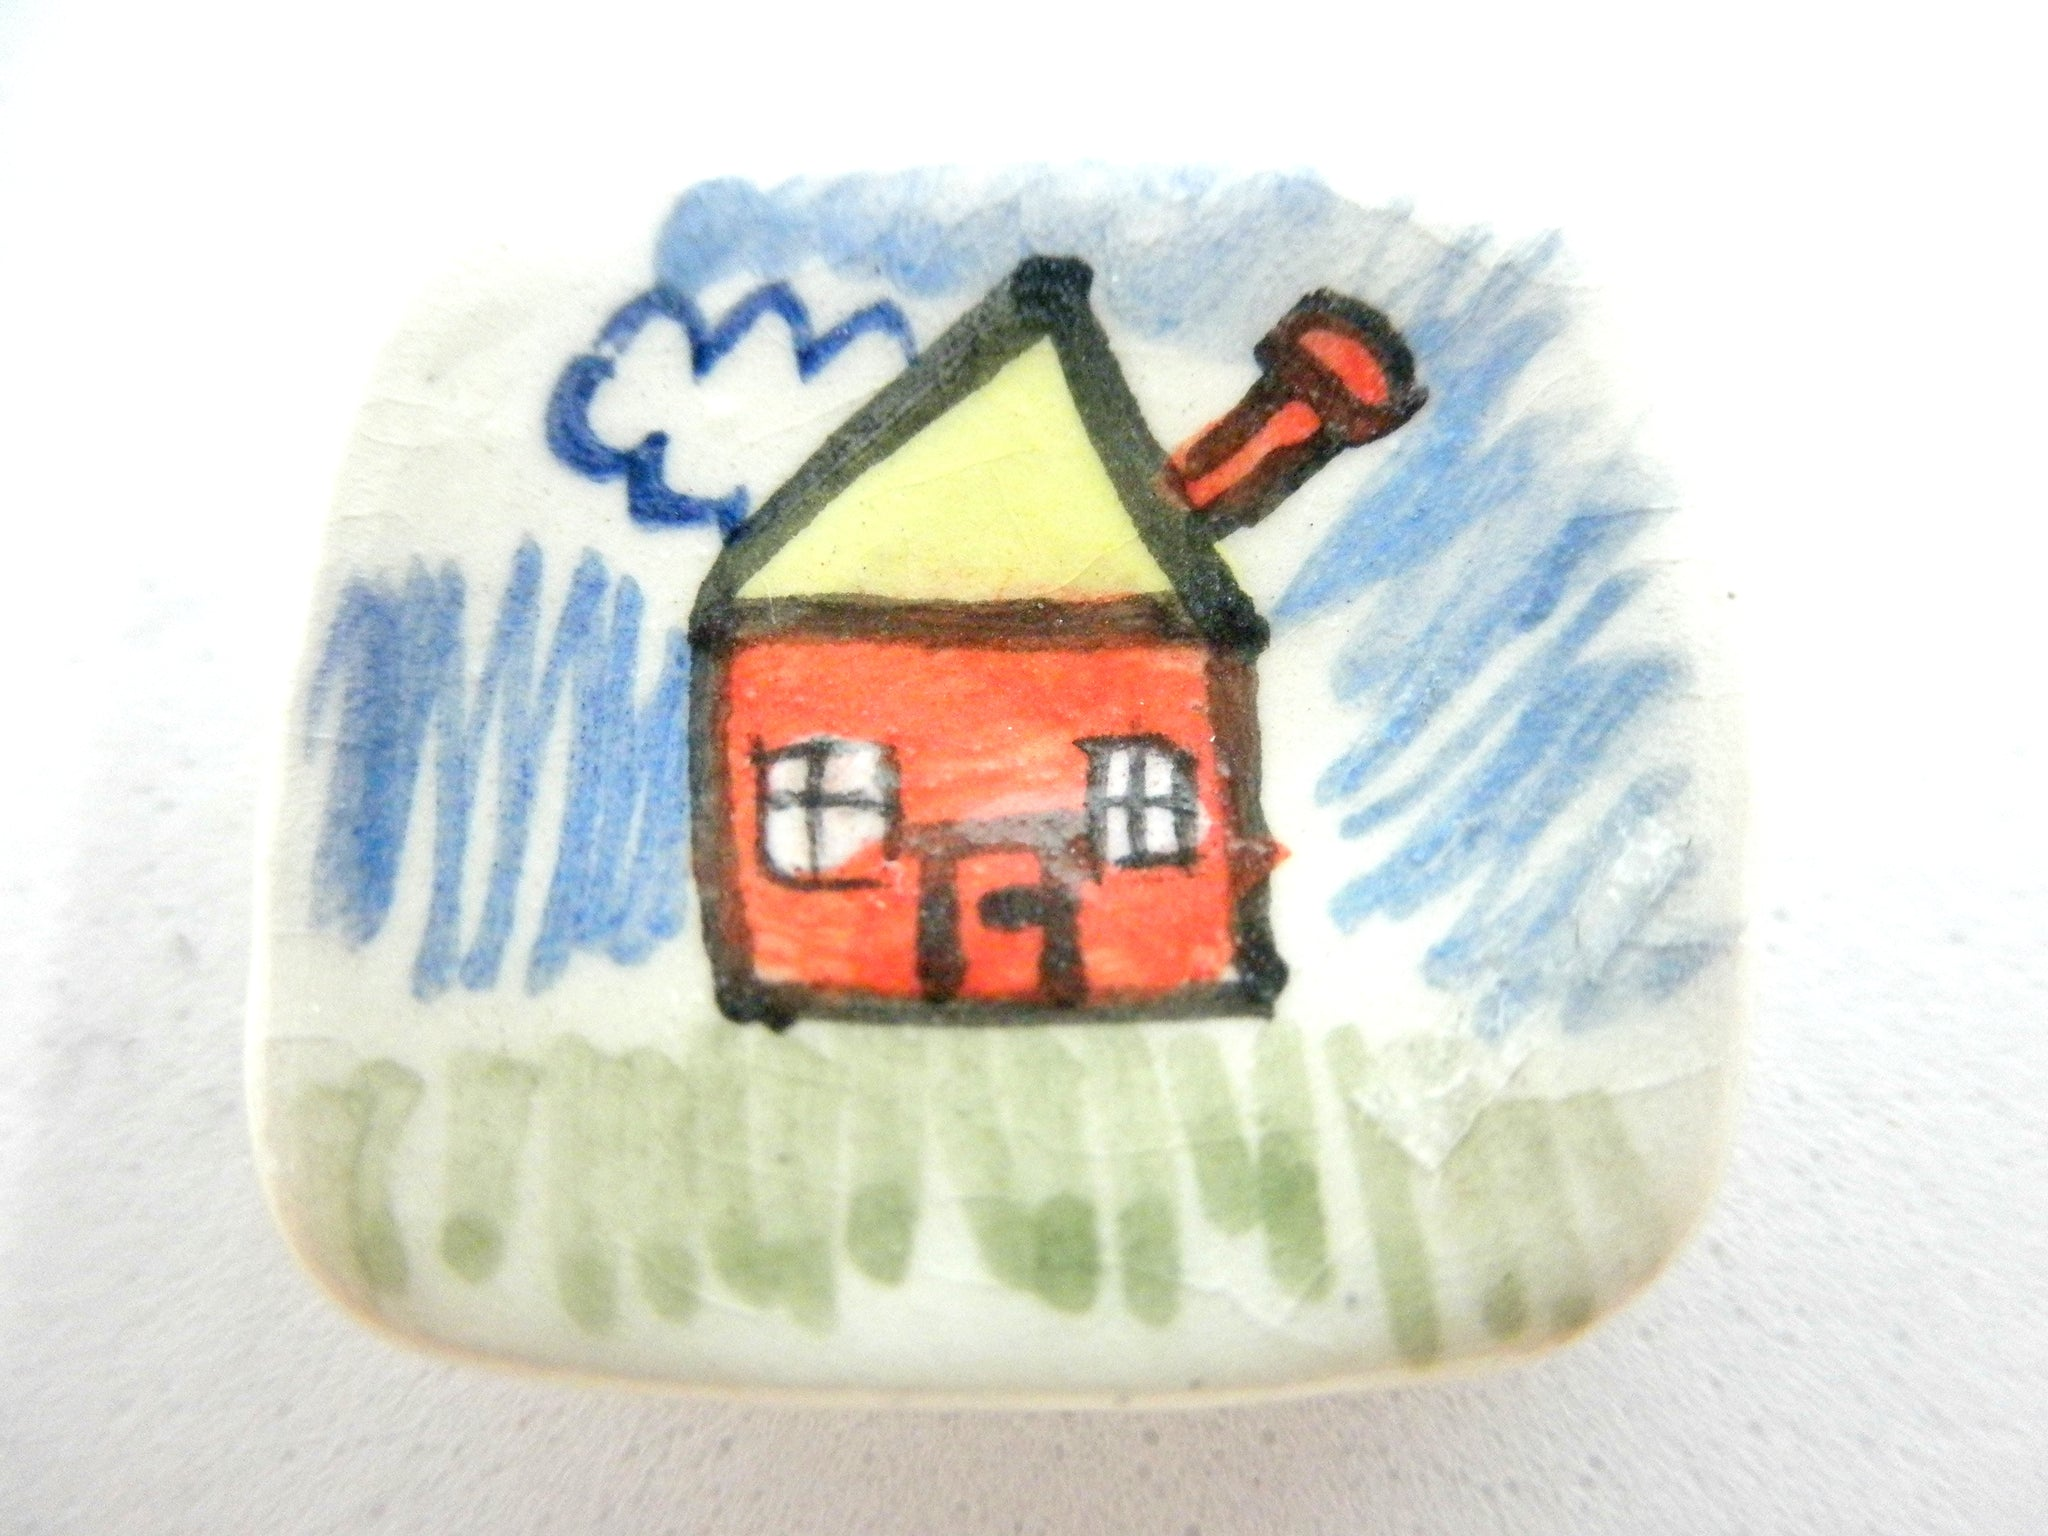 Miniature ceramic plate child's drawing of a house